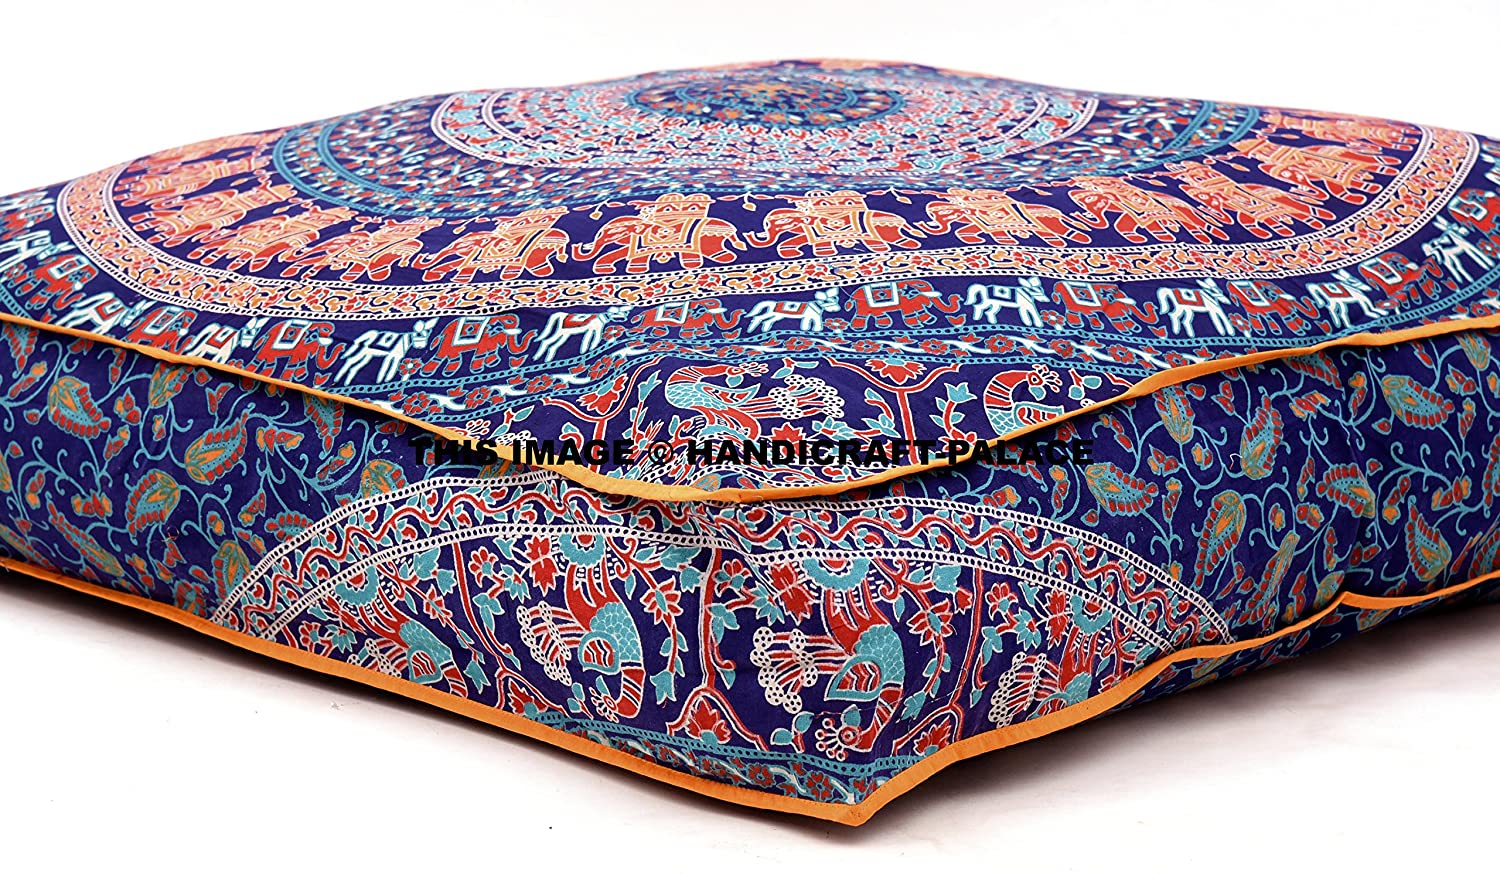 "Amazon.com: Large Indian Meditation Floor Pillow Cover 20"" X 20 ..."